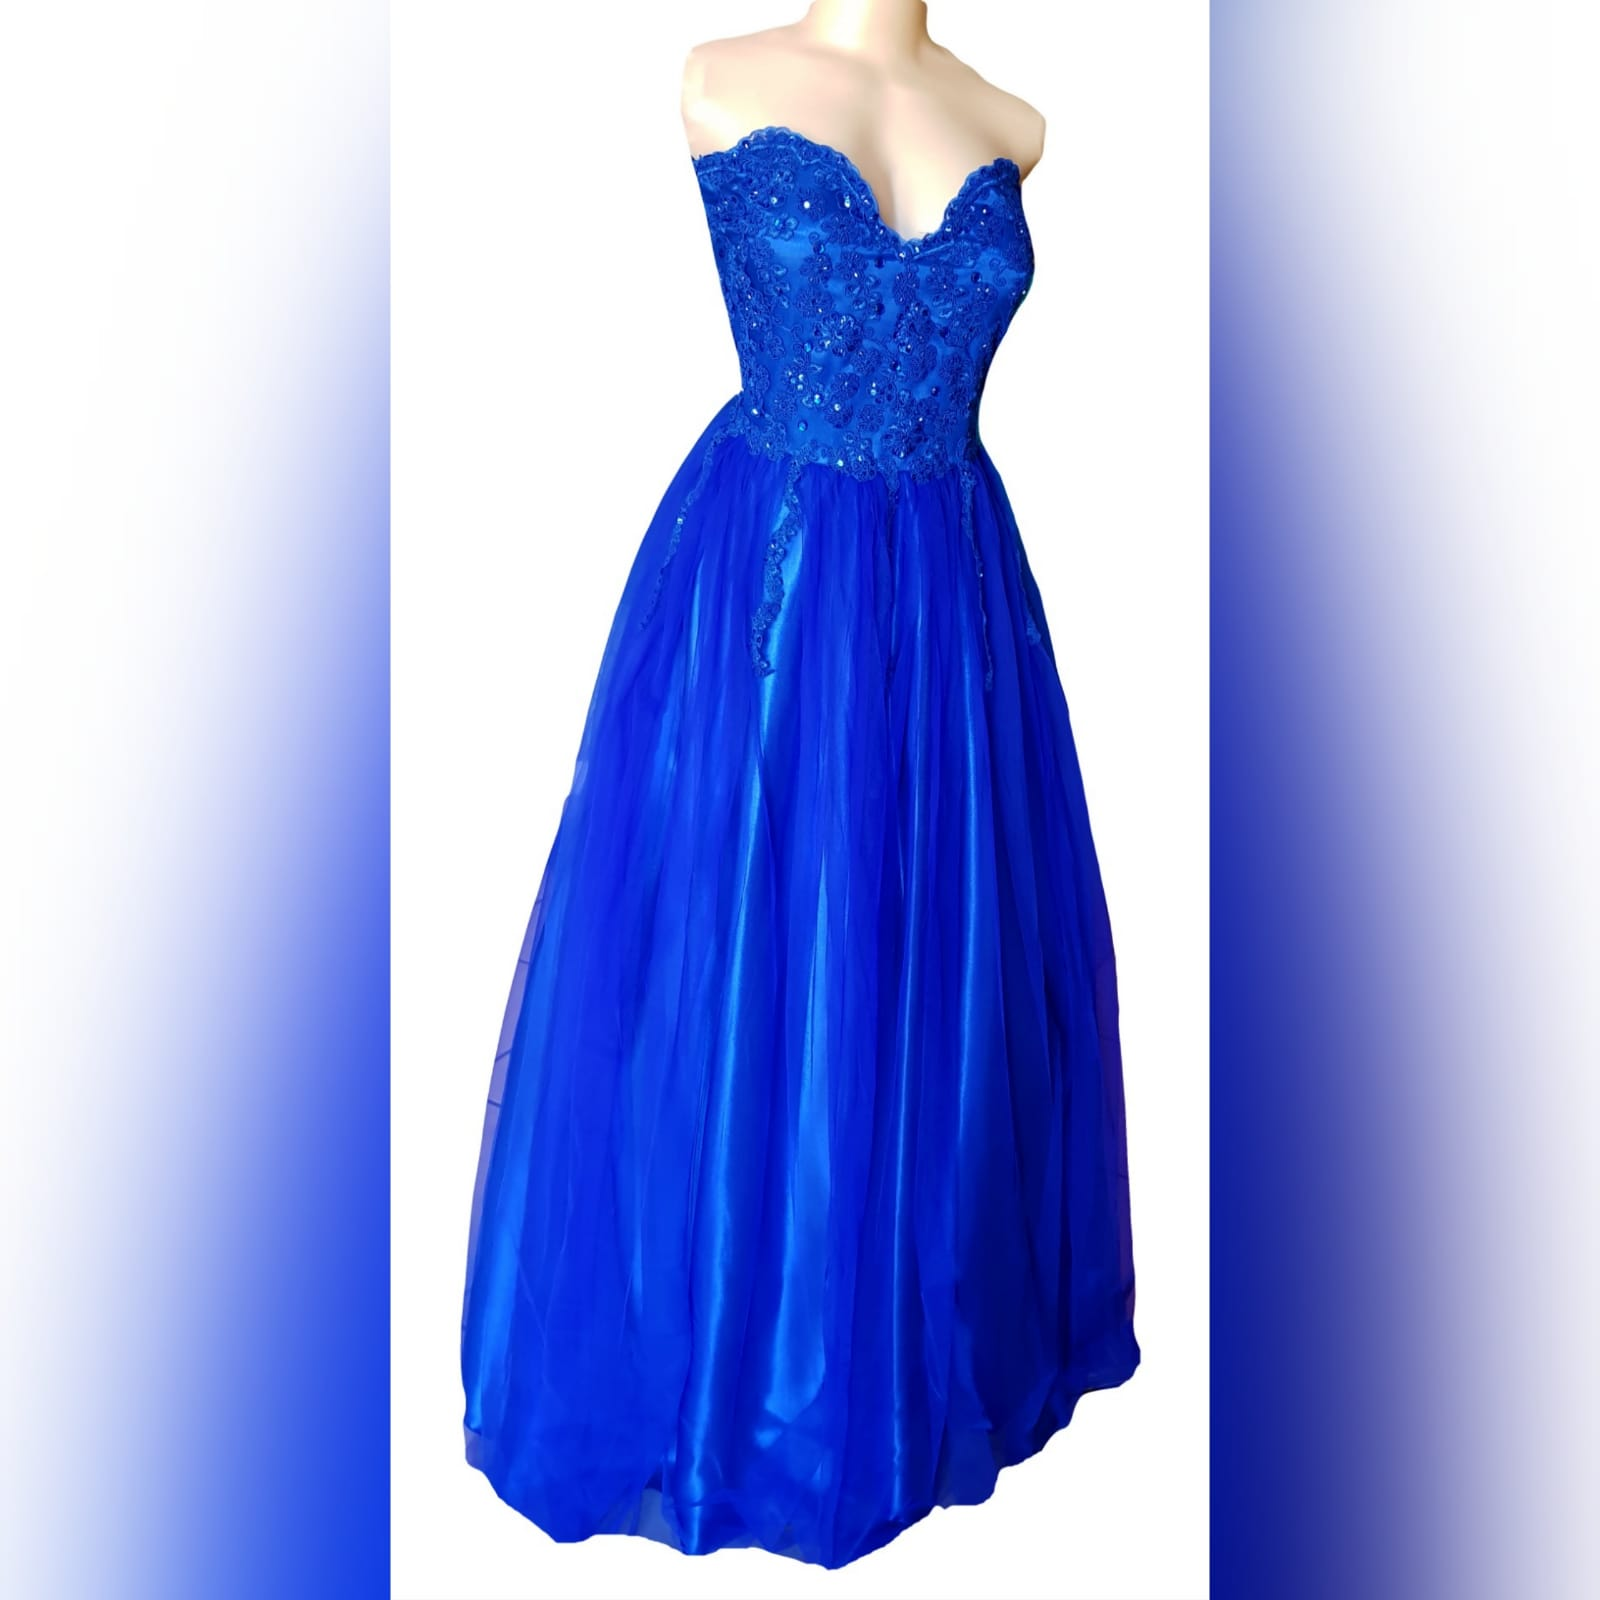 Royal blue boobtube tulle prom dress 10 royal blue boobtube tulle prom dress. Bodice with a sweetheart neckline and detailed with beaded lace falling onto the tulle skirt.